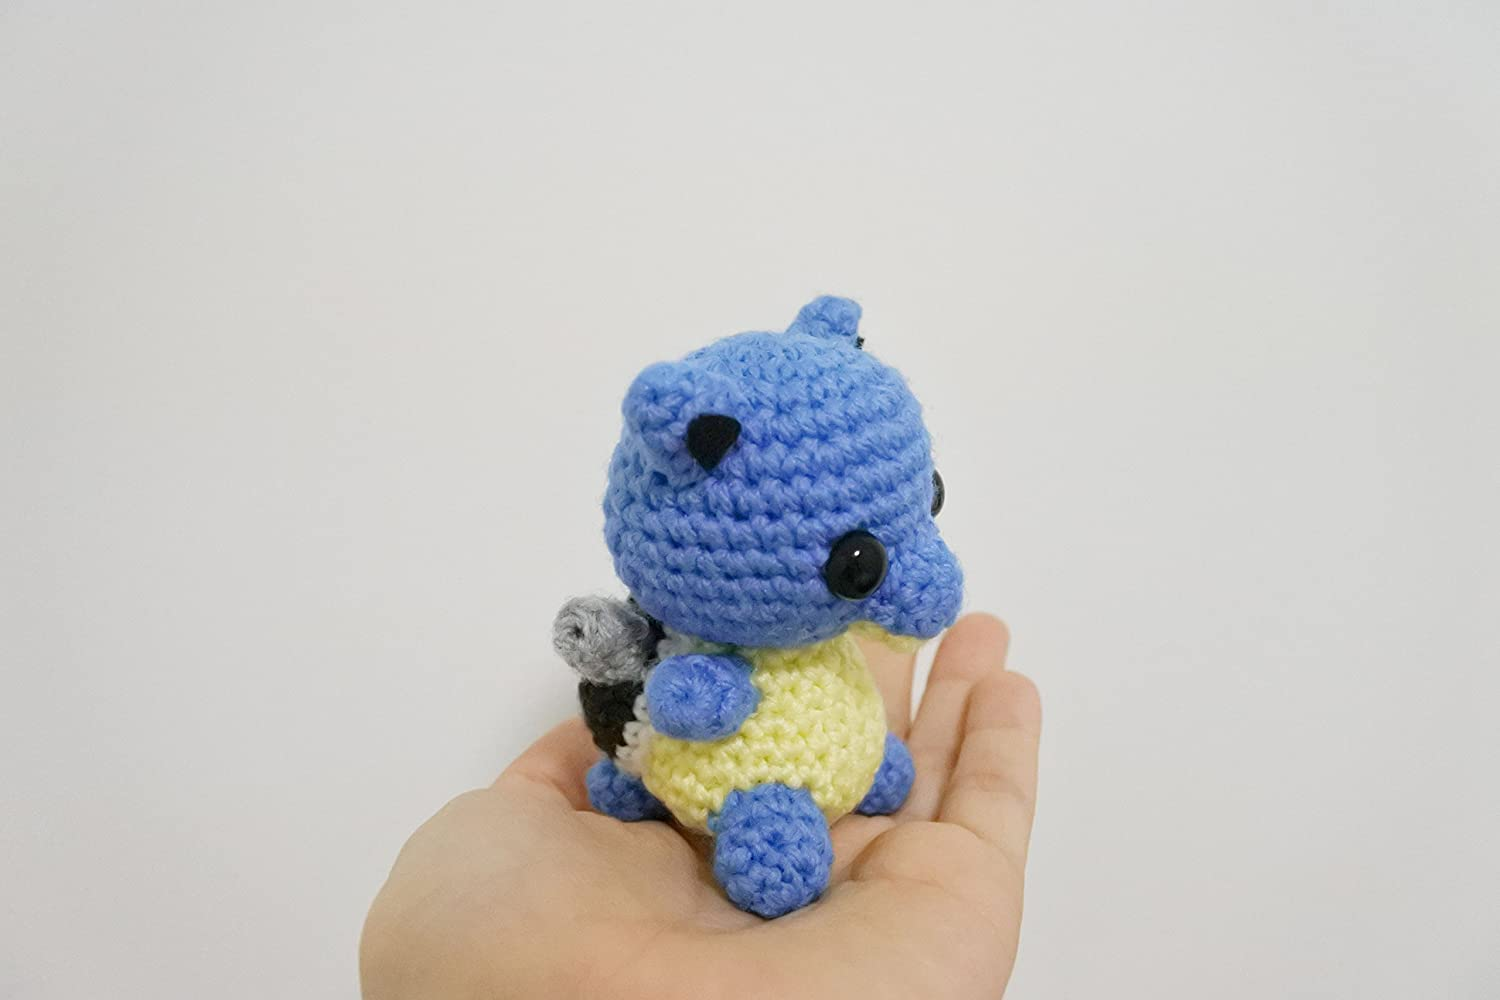 Amazon.com: Blastoise Amigurumi/Crochet Stuffed Doll (Pokemon ...